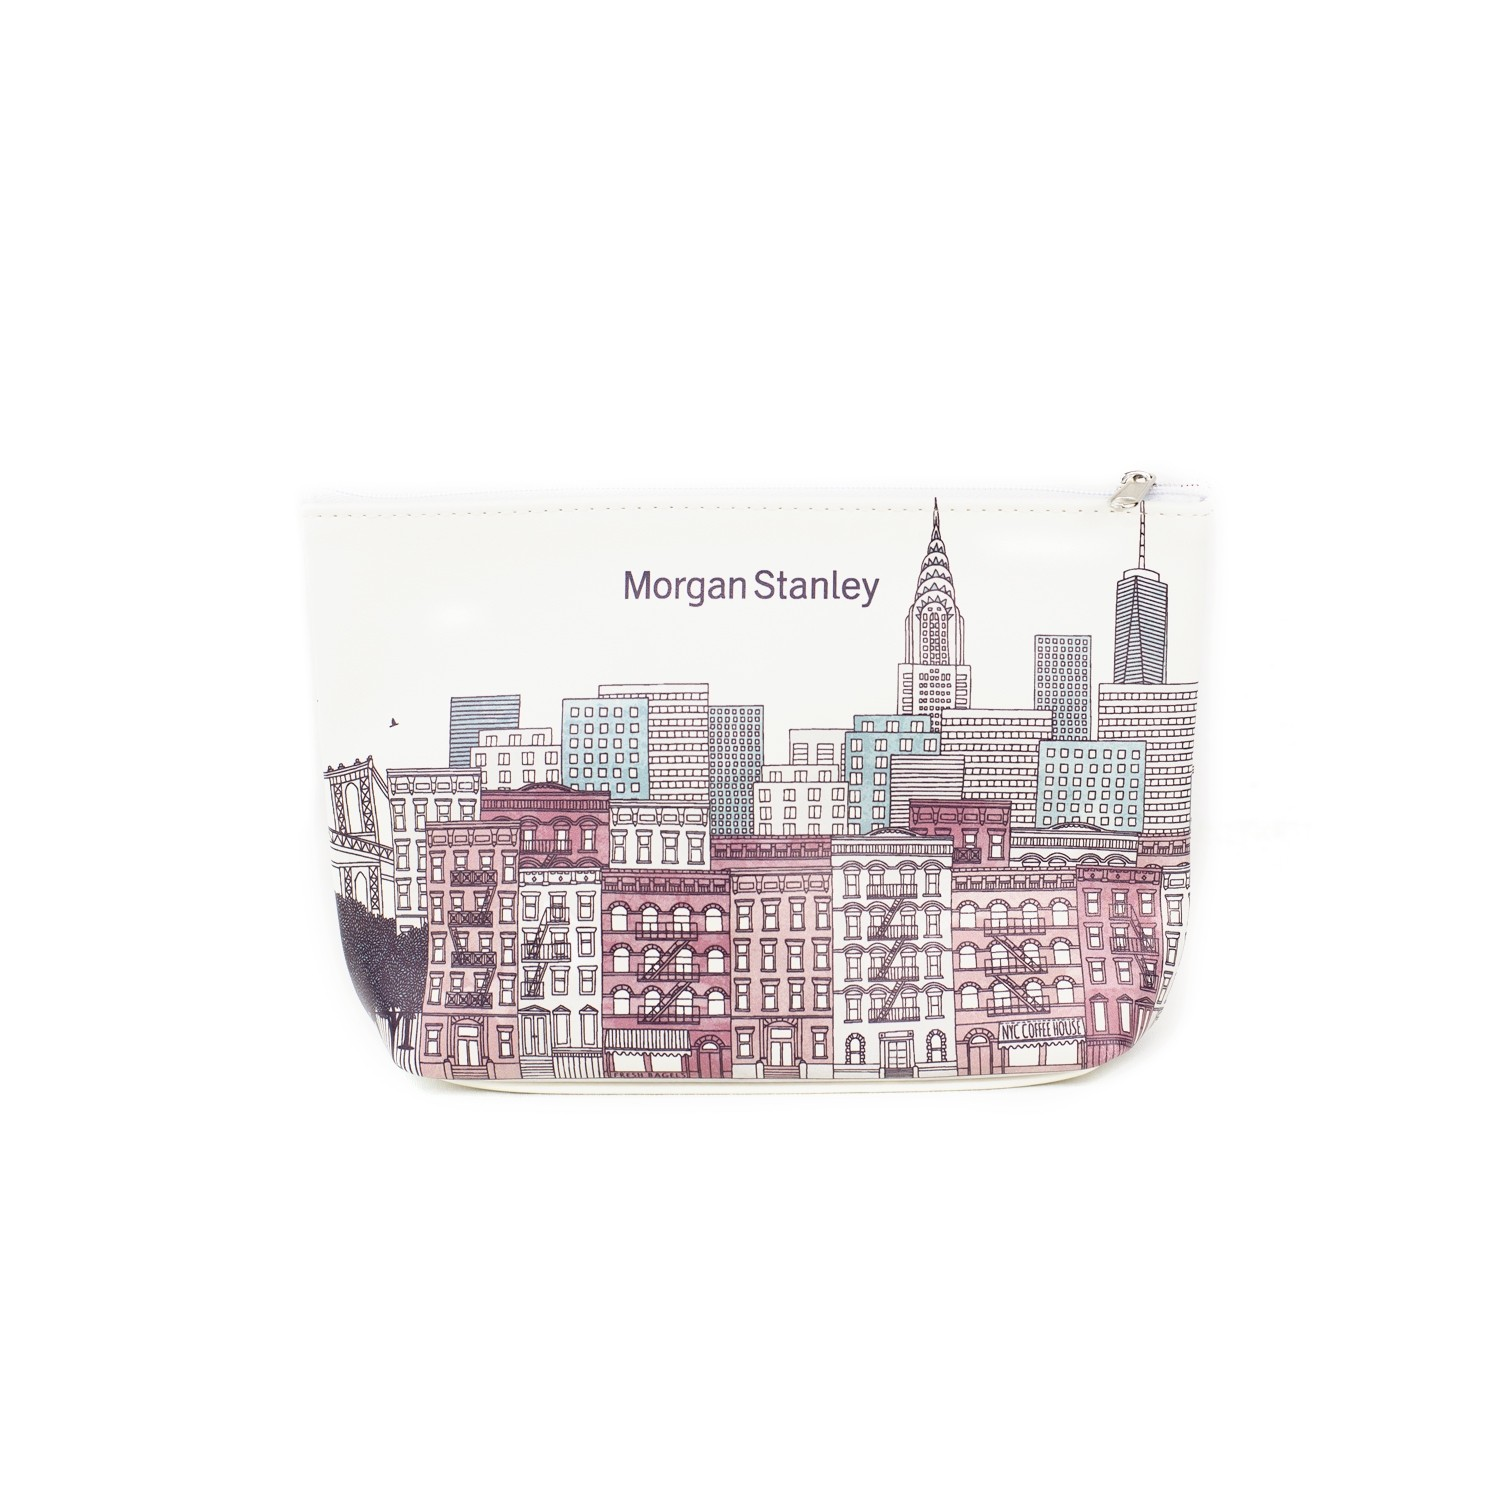 Full Color Sublimated Leatherette Gusseted Pouch